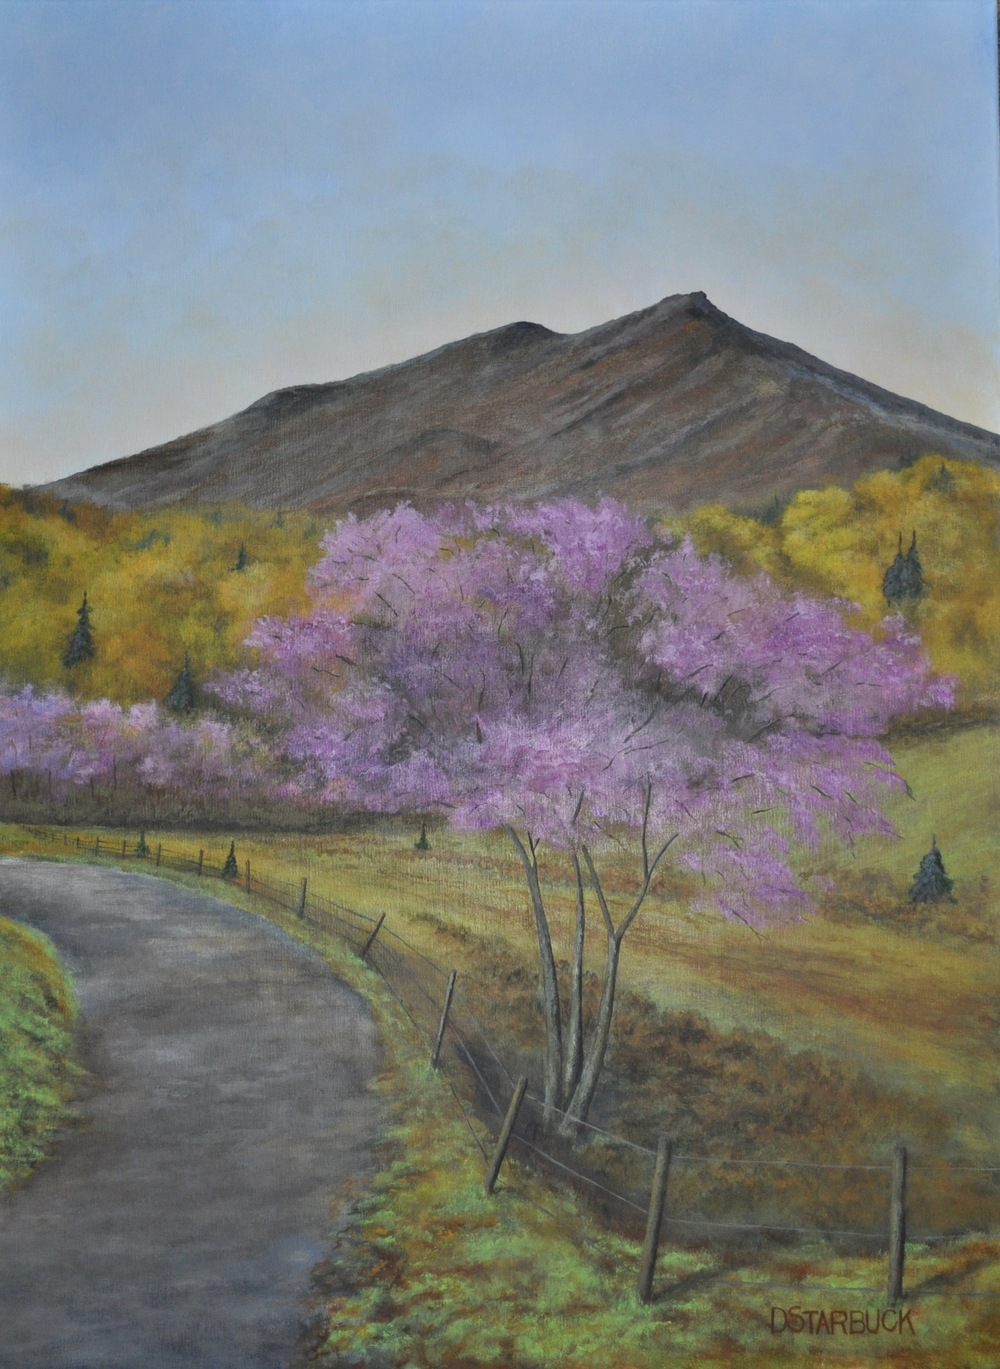 """Redbud Bloom at Grandfather"" off Moses Cone Fire Tower Trail, North Carolina  Original: Acrylic on Linen, 18"" x 24"""